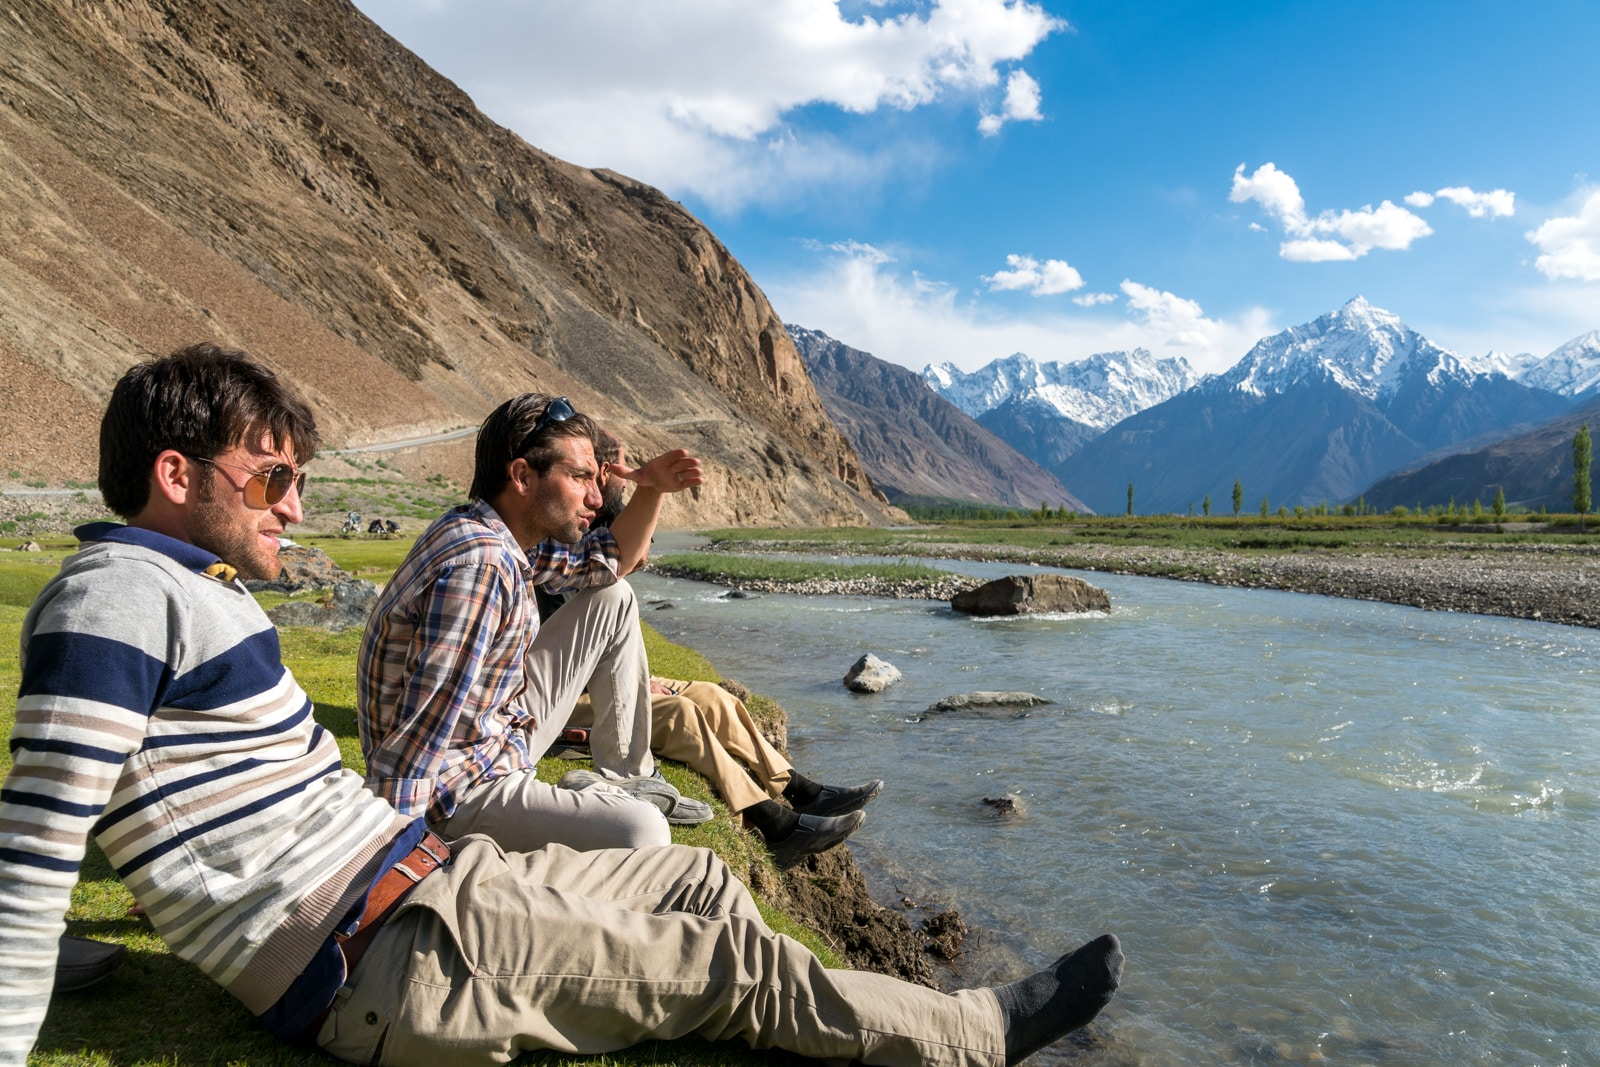 Reflections - Boys sitting next to a river in Yasin Valley, Pakistan - Lost With Purpose travel blog